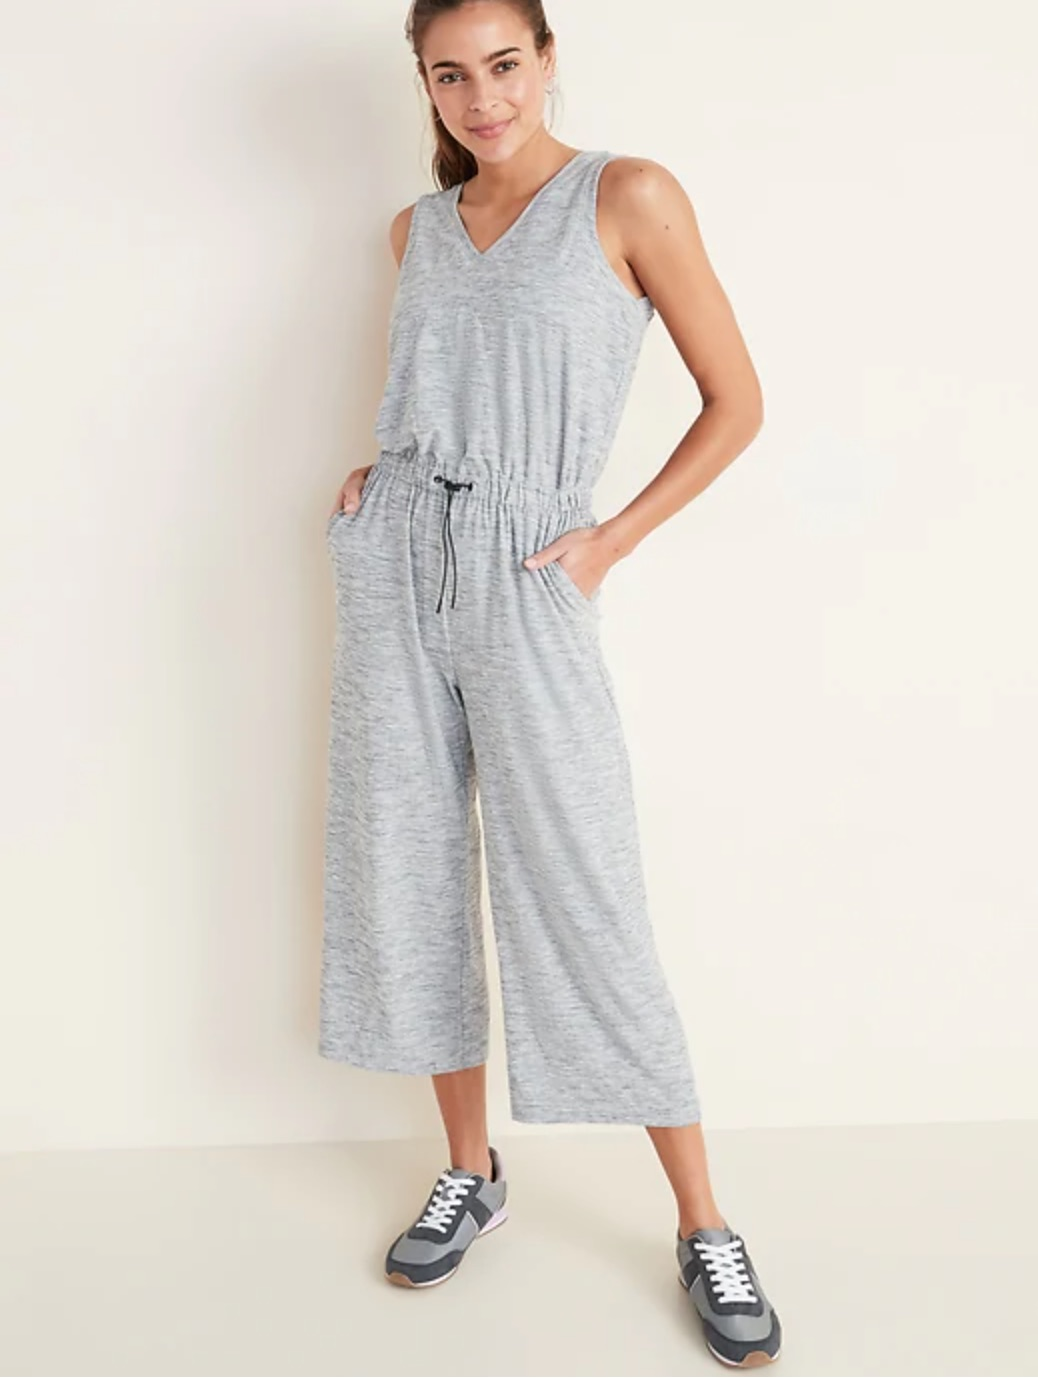 breathable soft knit gray jumpsuit from old navy